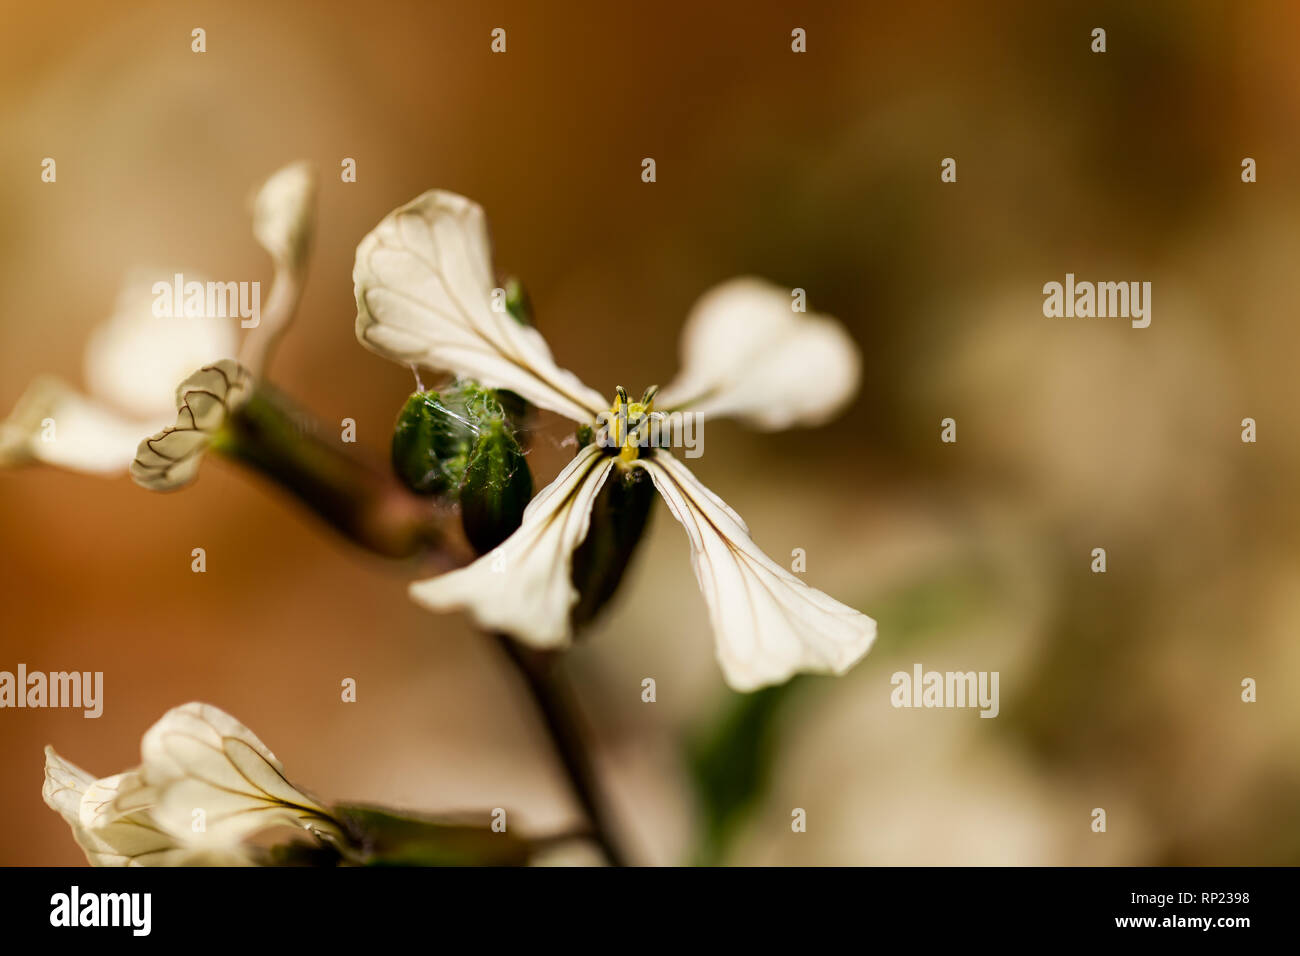 Colorado Clematis columbianus wild flower, white with a yellow center. Beautiful flower in macro image - Stock Image